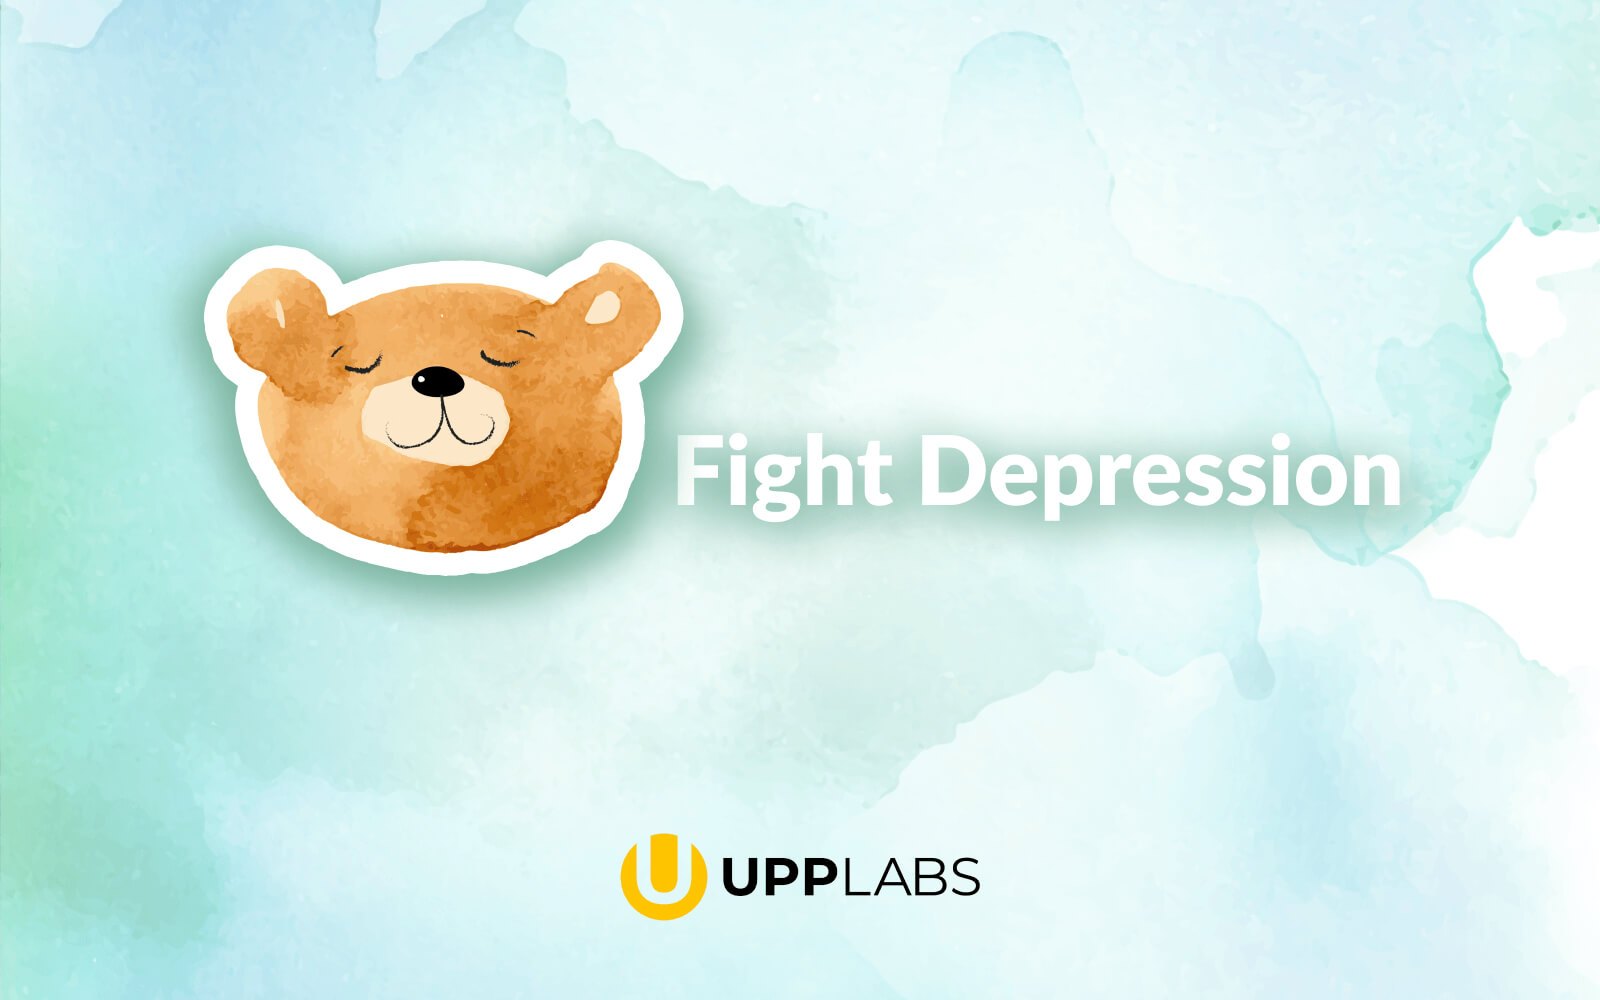 UppLabs developed a chatbot to help people with depression